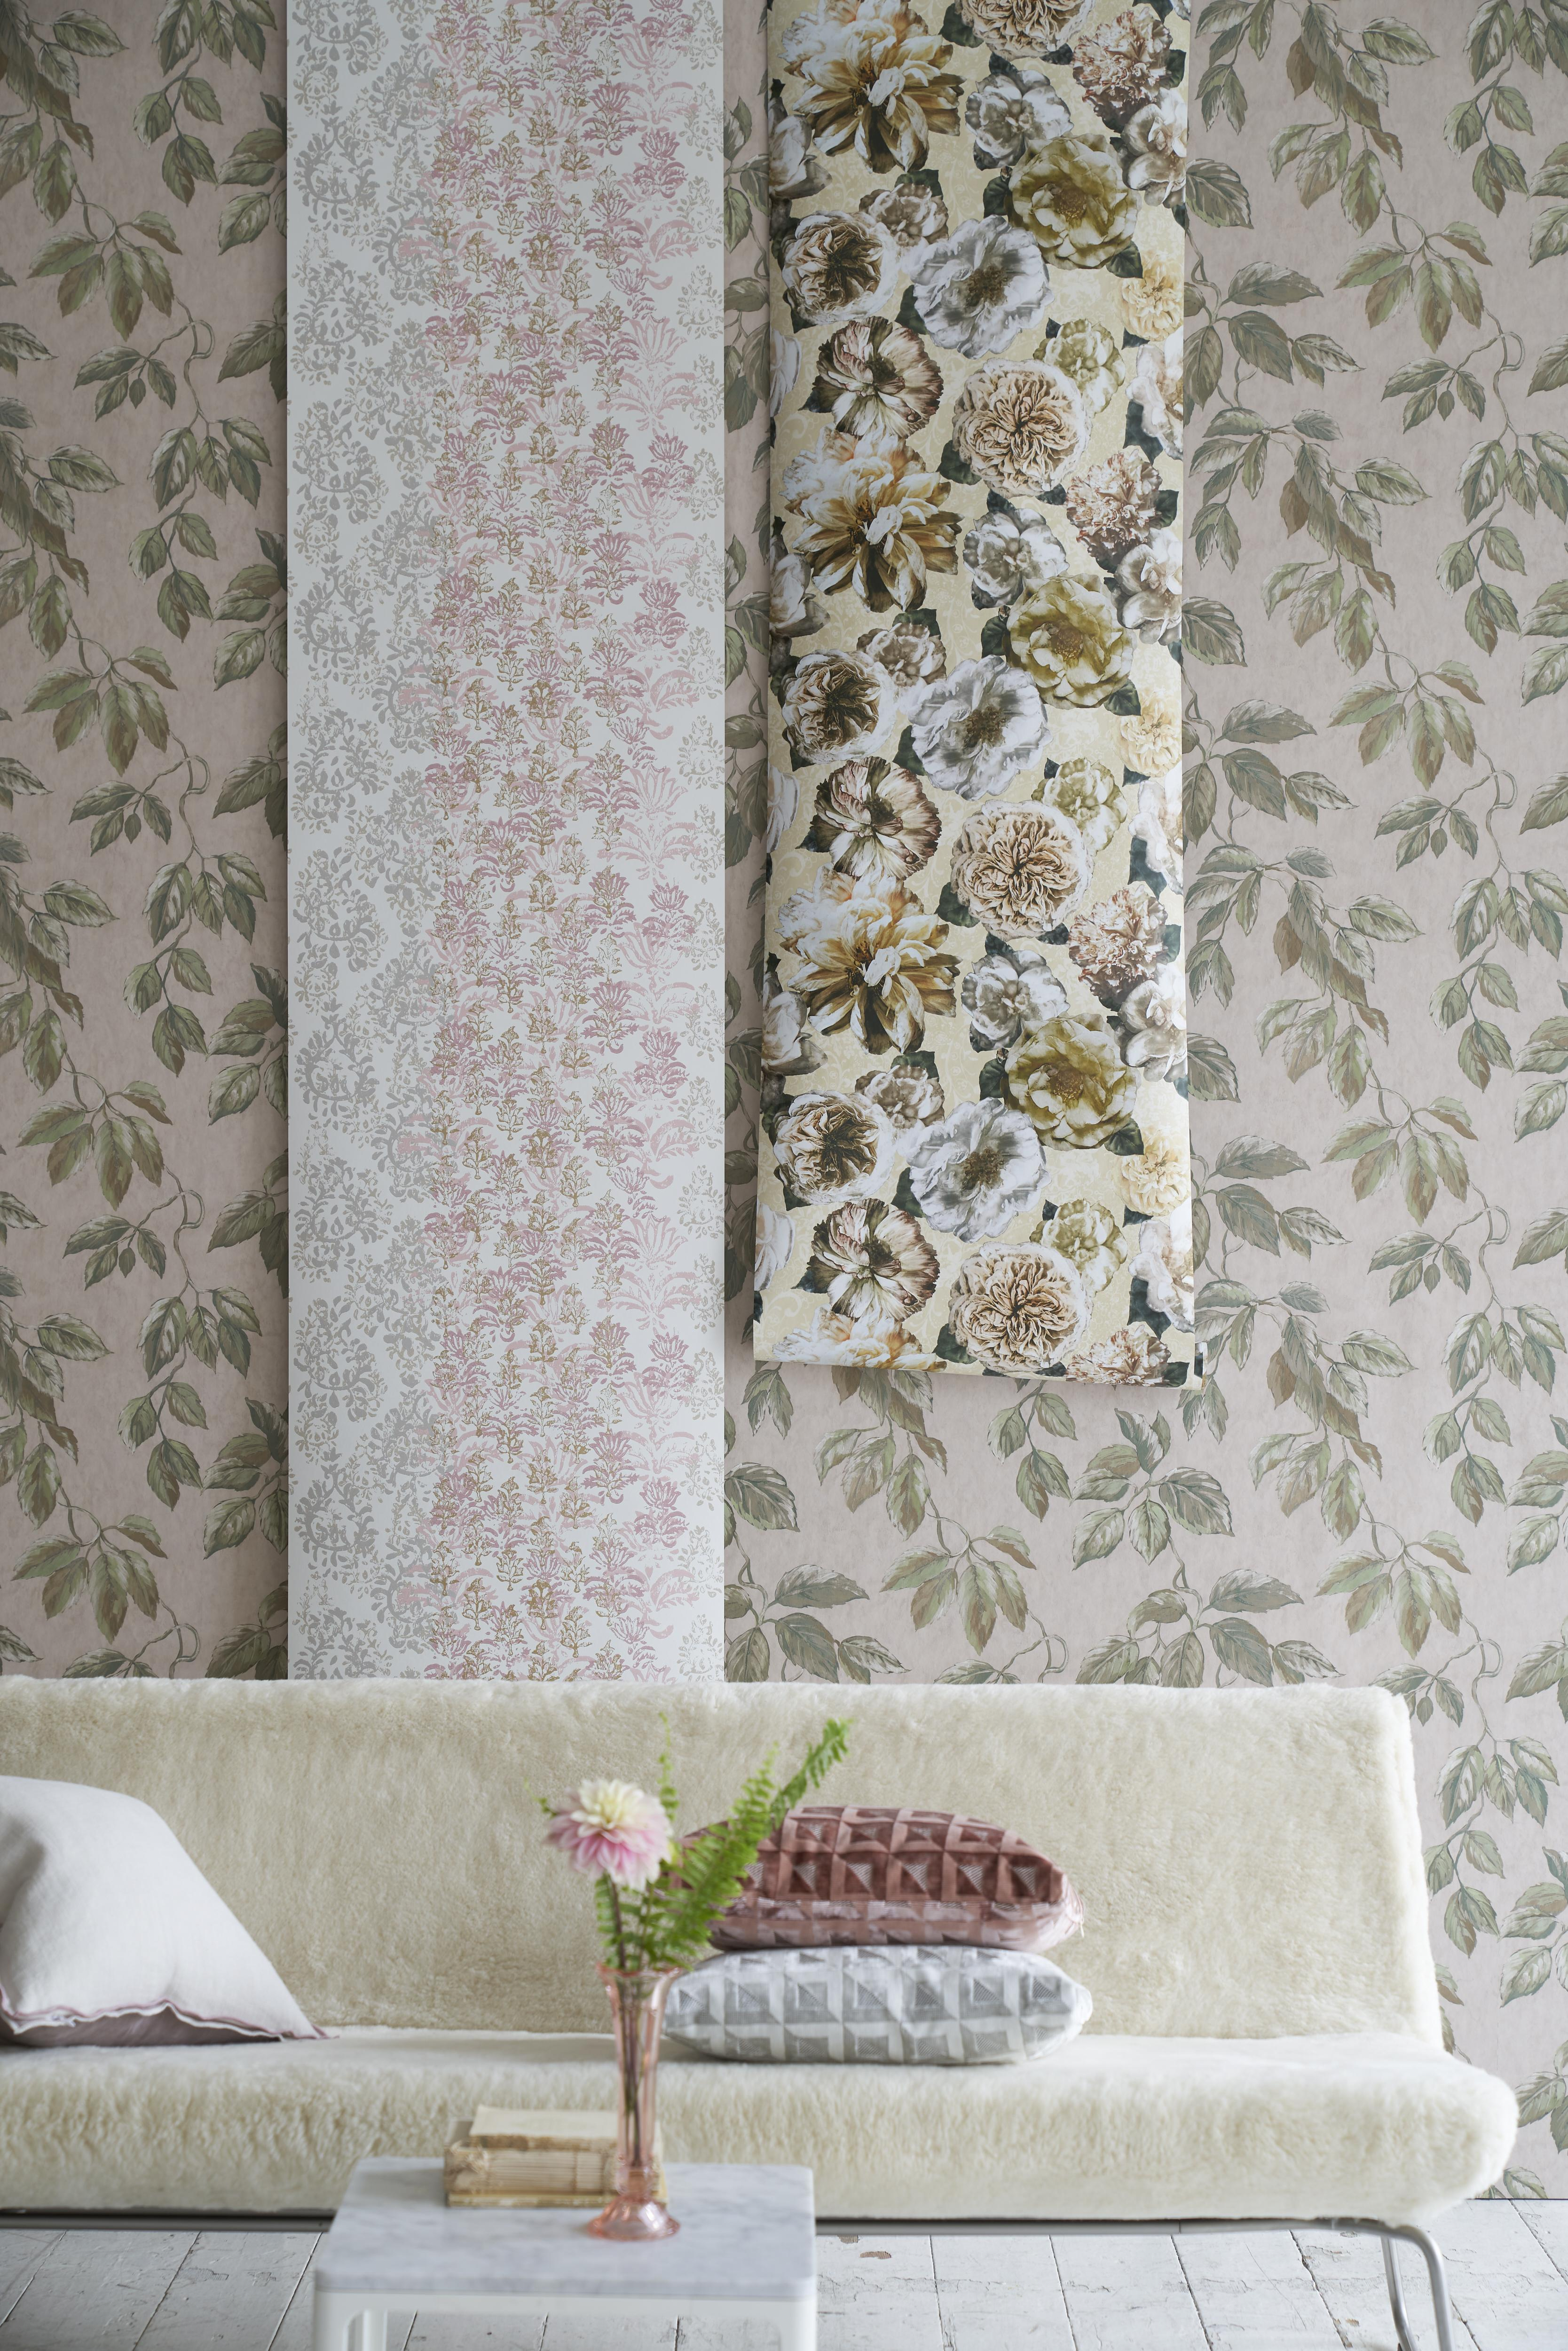 DESIGNERS GUILD WALLPAPERS